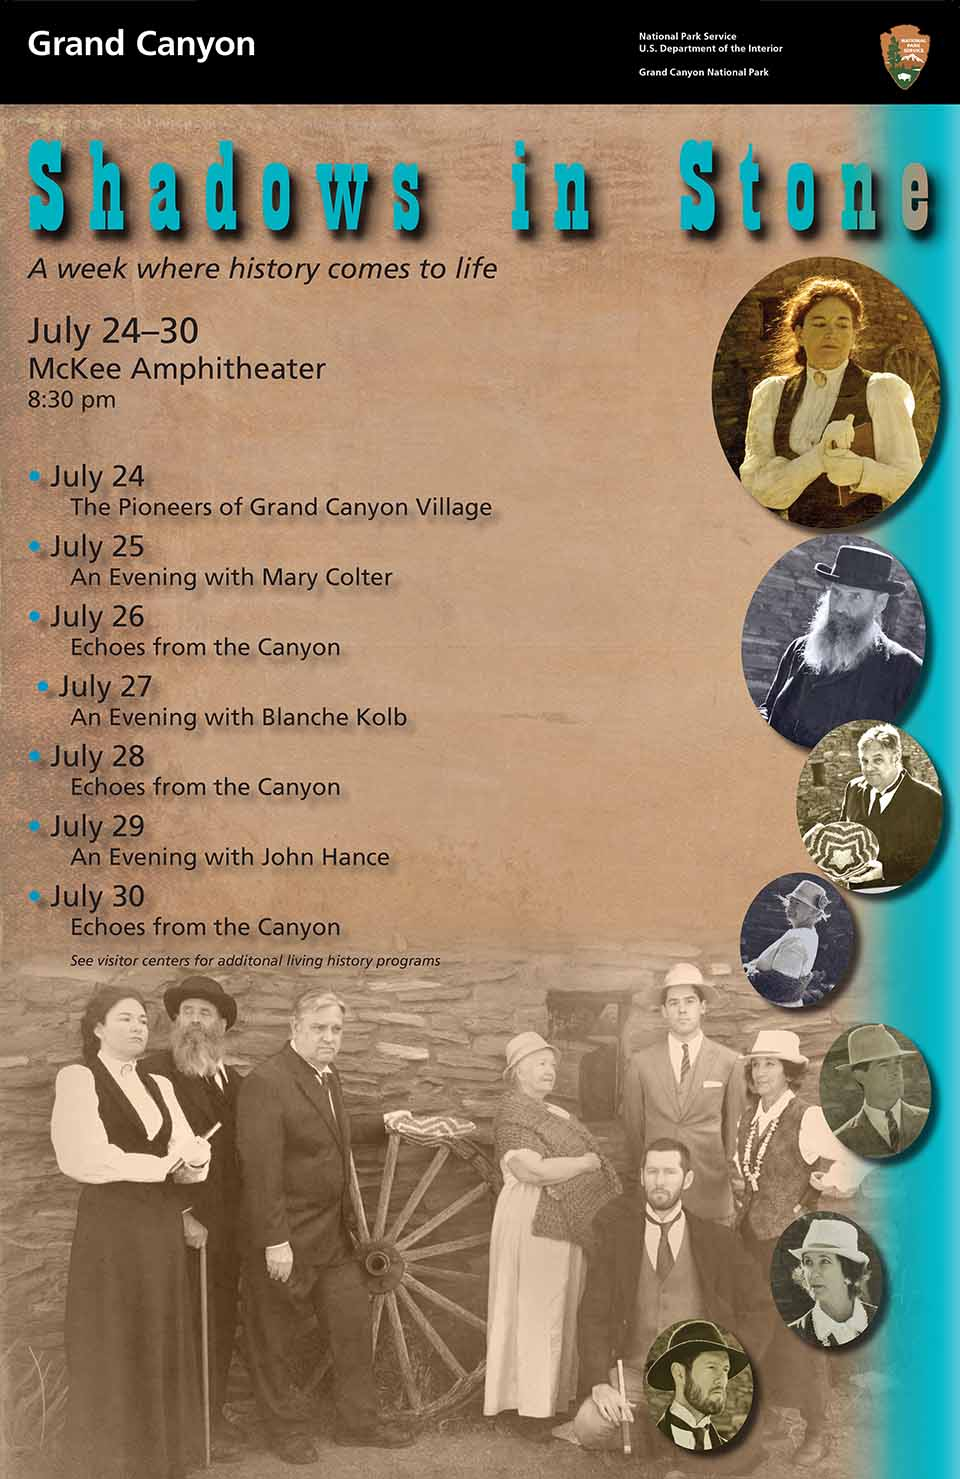 Shadows in Stone - Living history week poster has each day's schedule listed on the left with individual oval-shaped photos of the actors on the right. At the bottom is a group shot of all seven actors. The schedule in text format is displayed above.